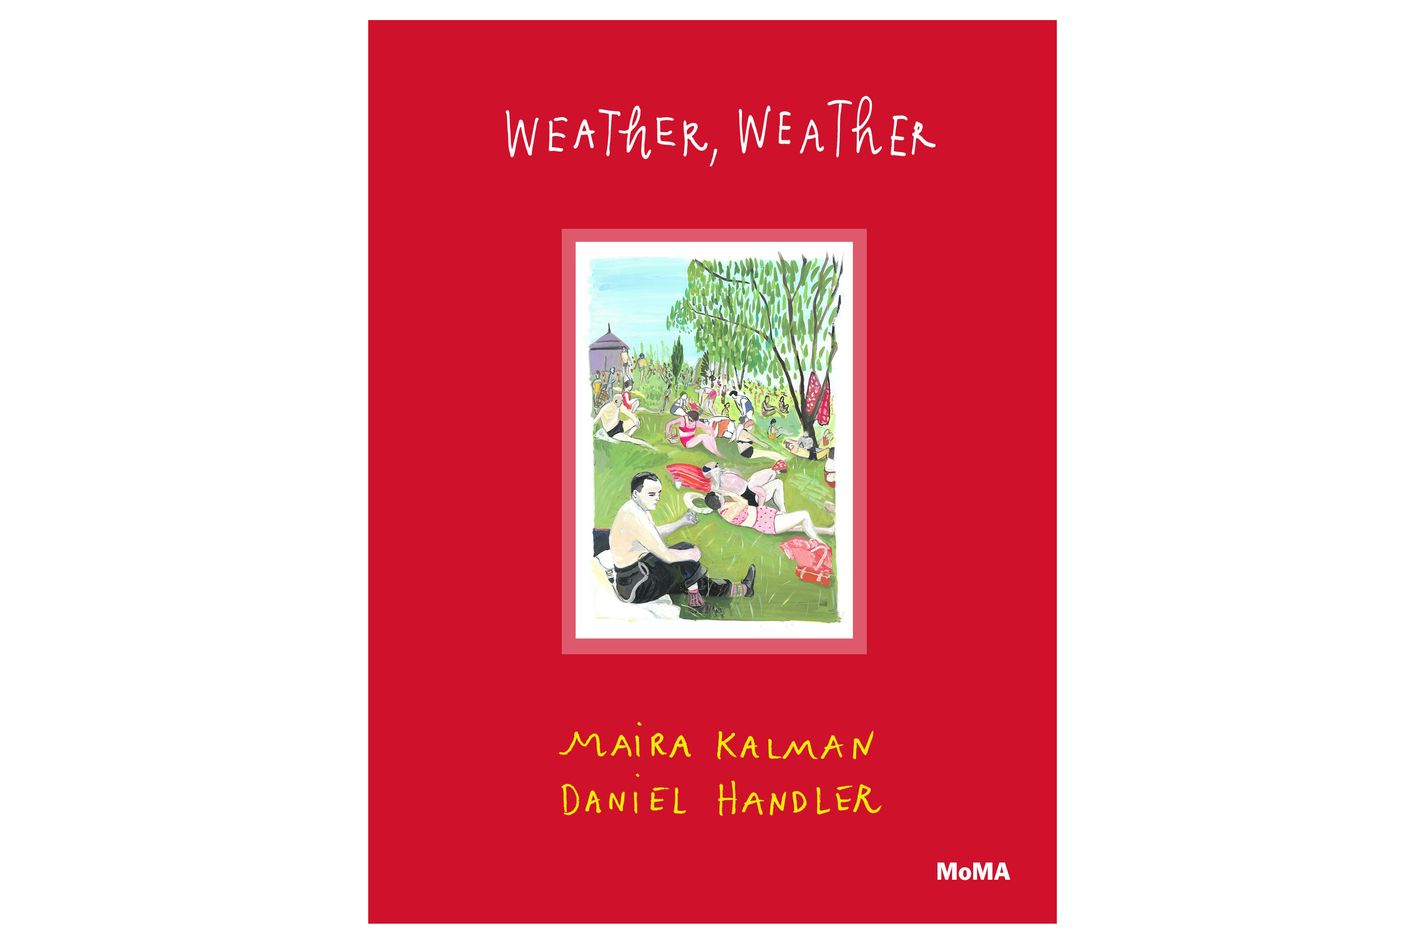 Weather, Weather by Maira Kalman and Daniel Handler